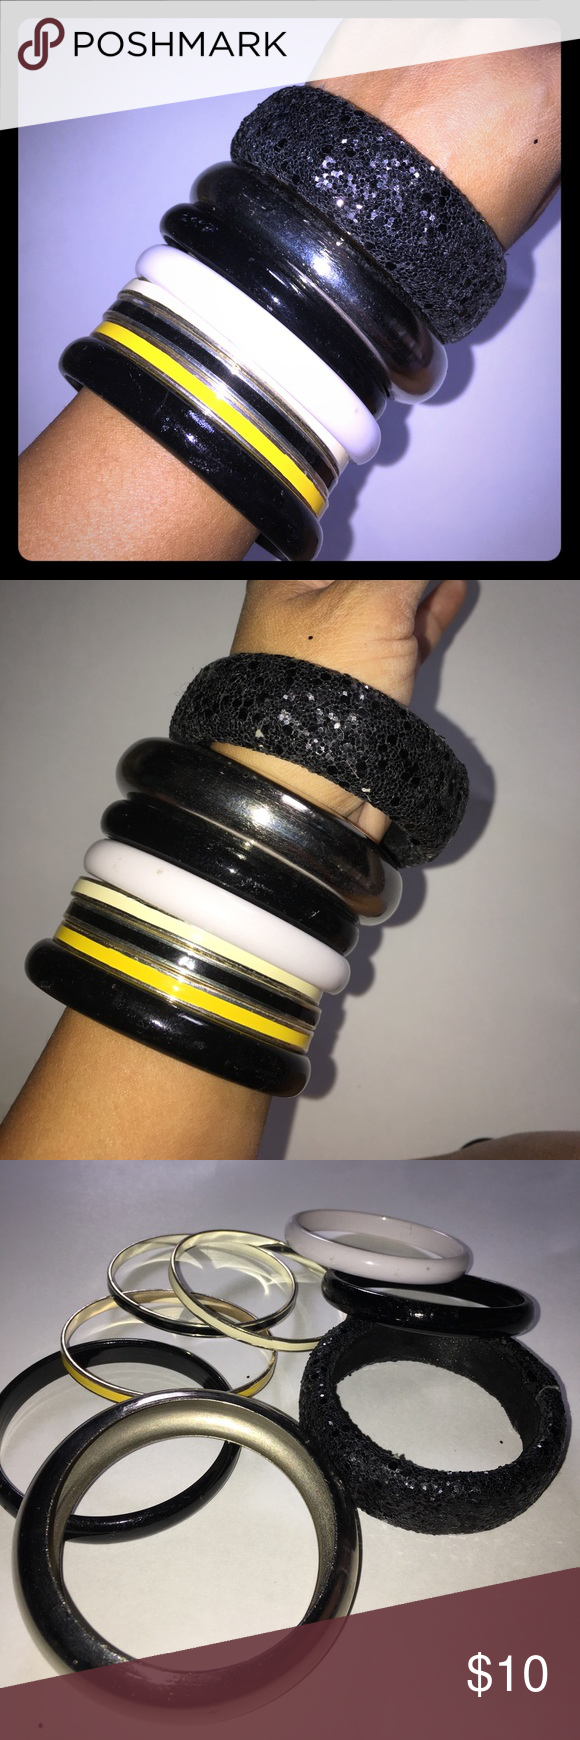 Bangle set items total wear all together or make your own sets